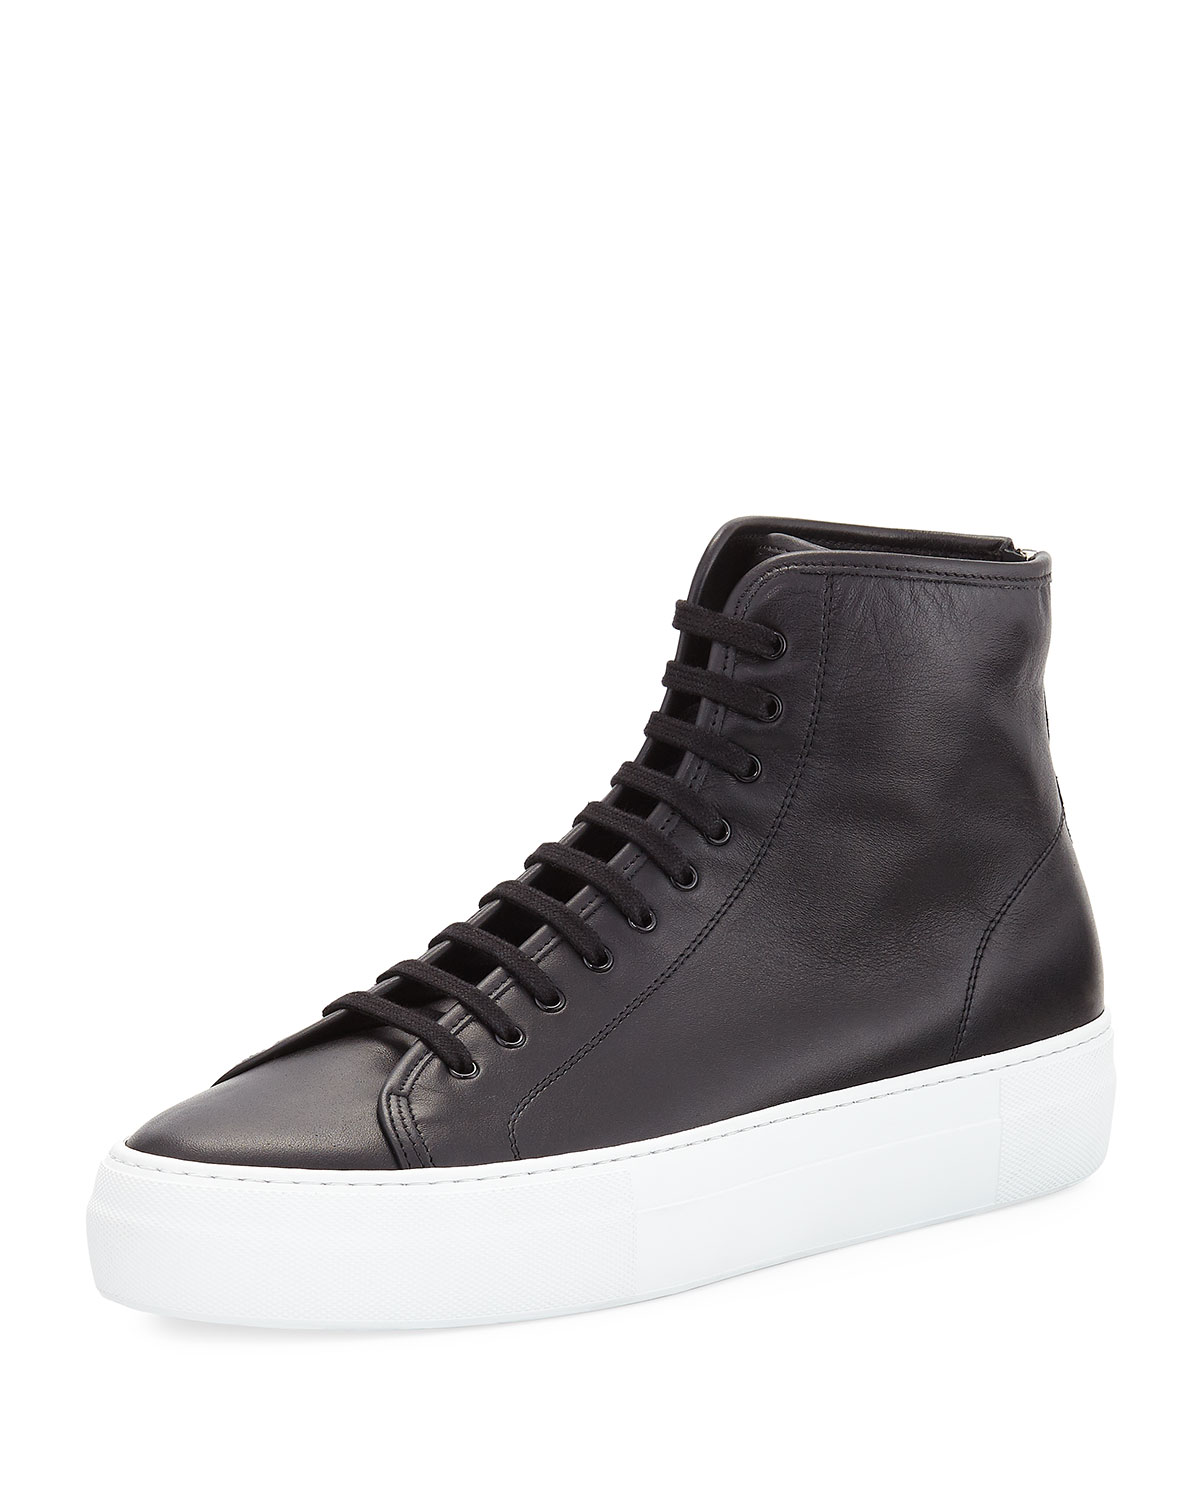 Mens Tournament Leather Sneakers Common Projects FBuvRySN6q